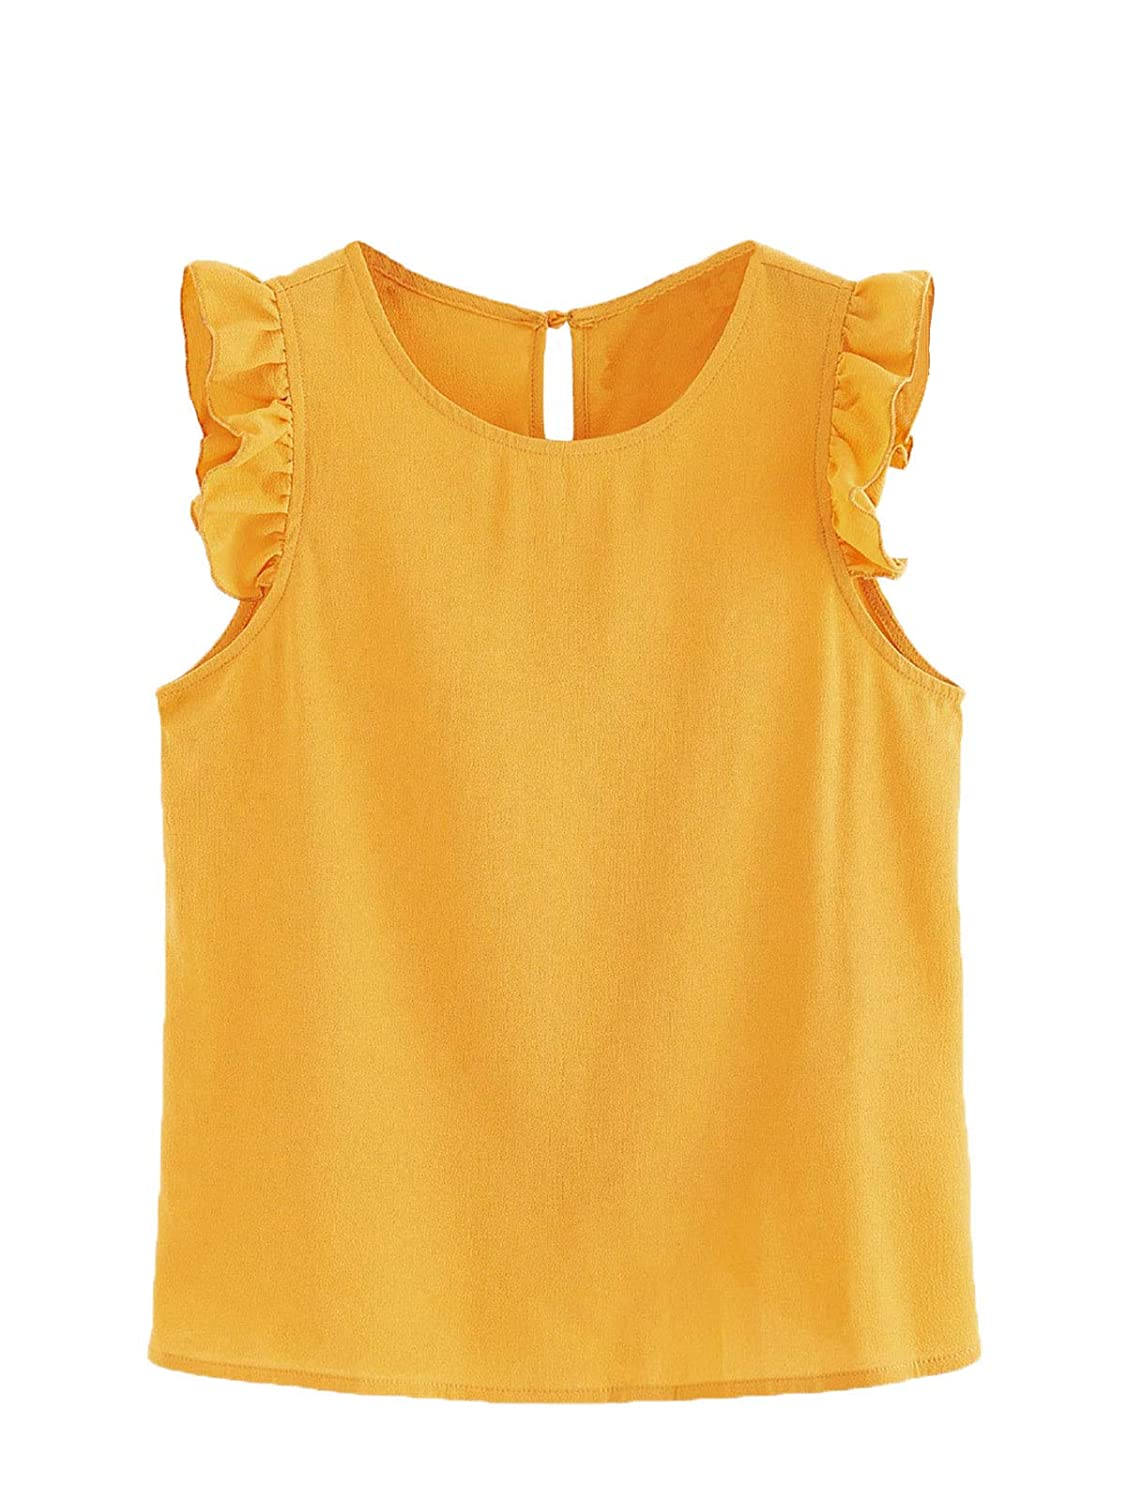 Mustard Floerns Women's Summer Round Neck Sleeveless Frilled Keyhole Shirt Blouse Top Black